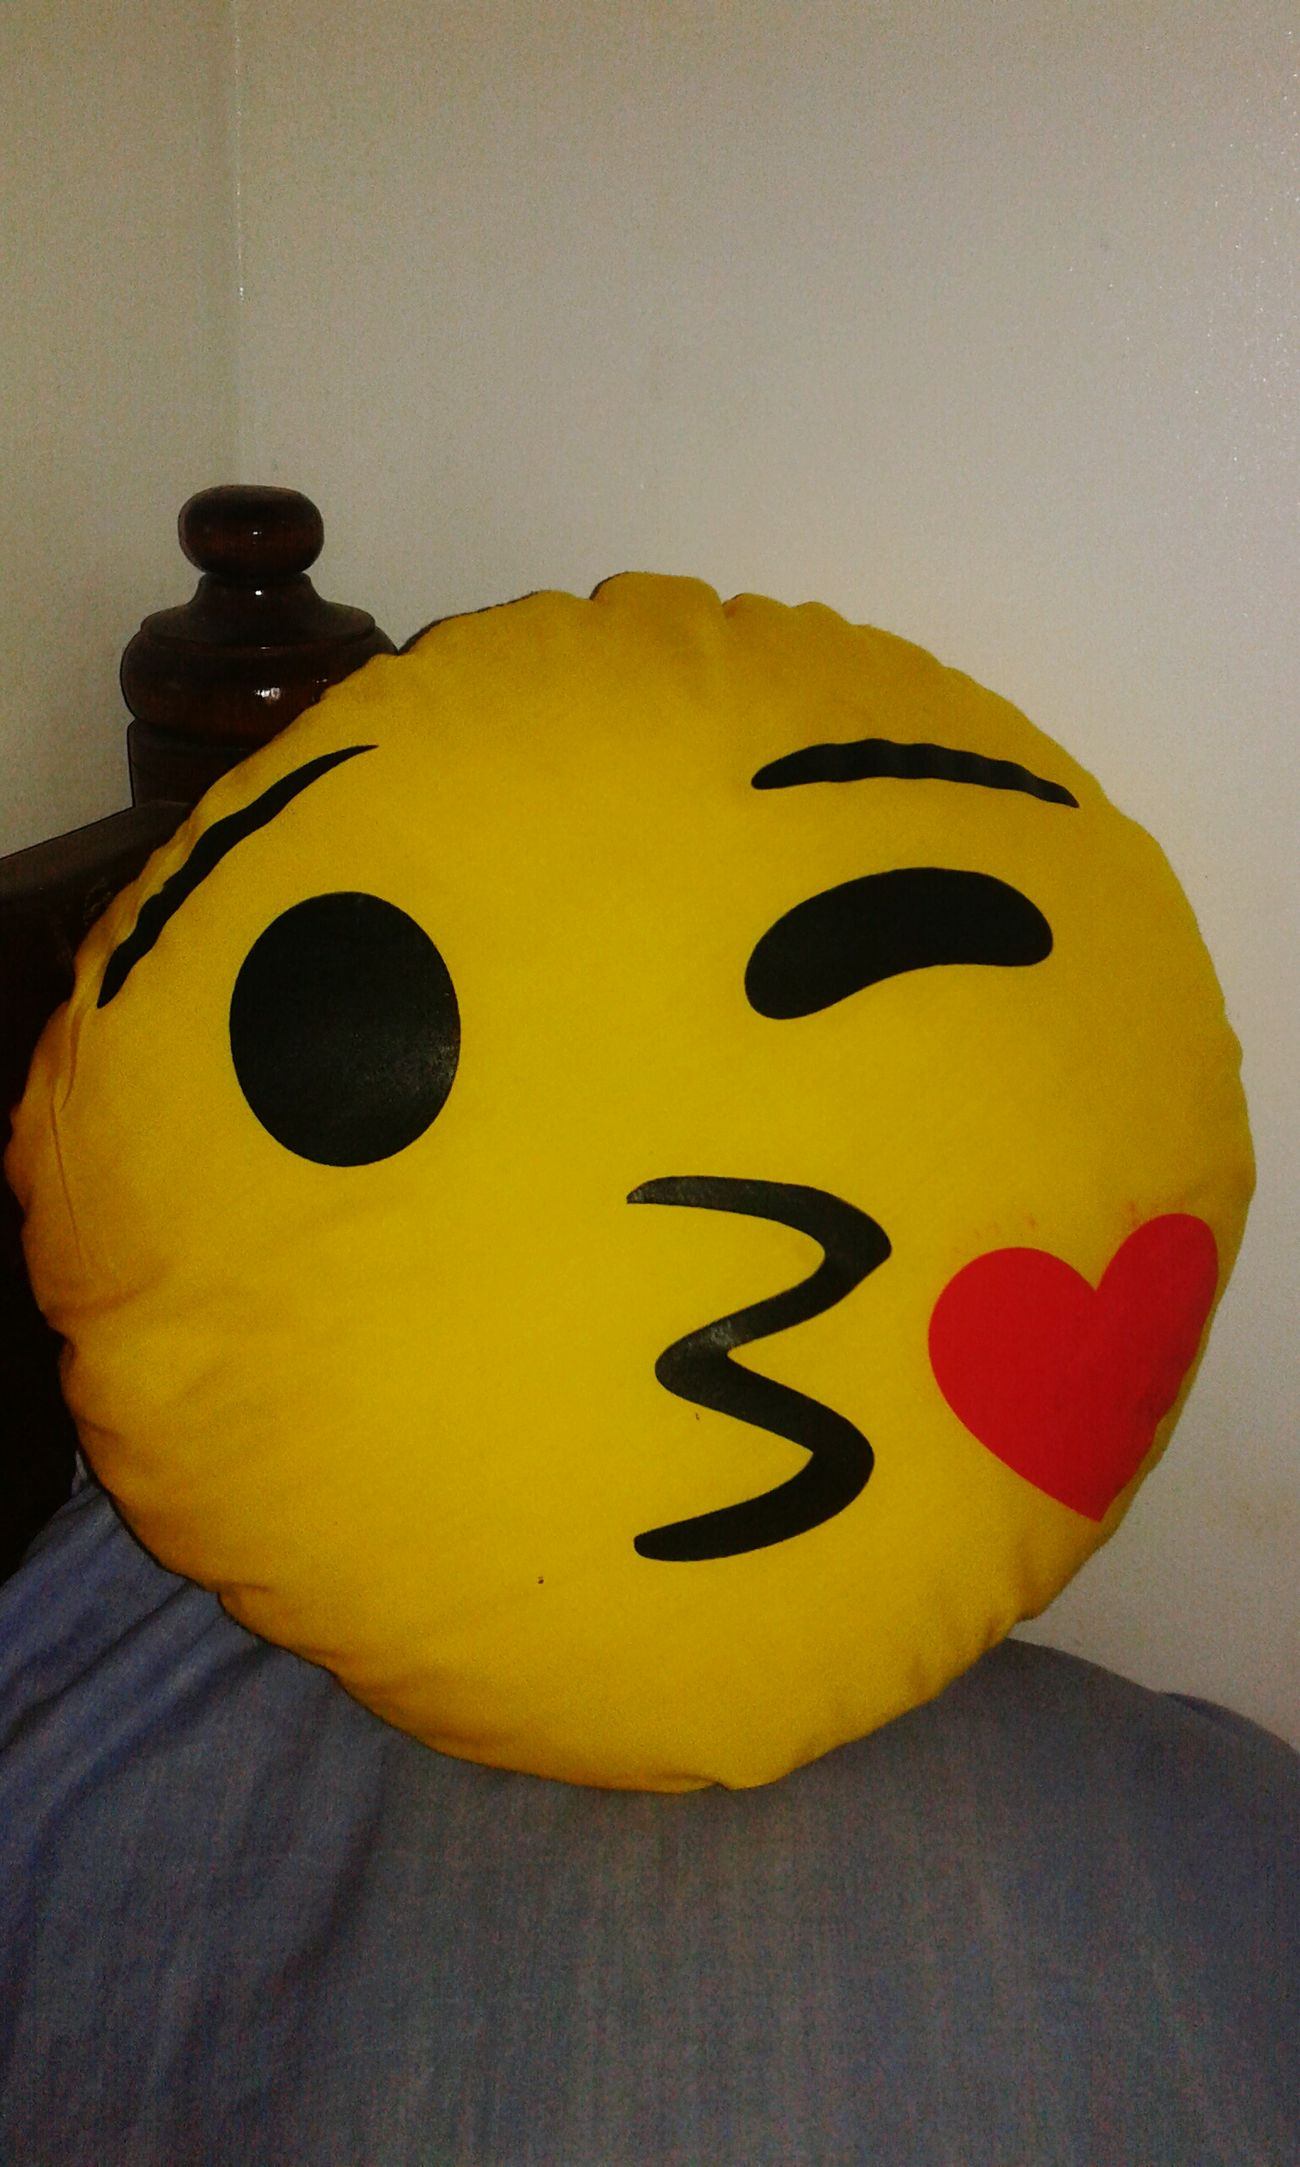 Emoji 🙈🙉🙊 Emoji Face Emoji Pillows Eyem Gallery Yellow Creativity Circle Yellow Home Decor Timetosleep Good Night ♡♡ Nightphotography Art Art And Craft